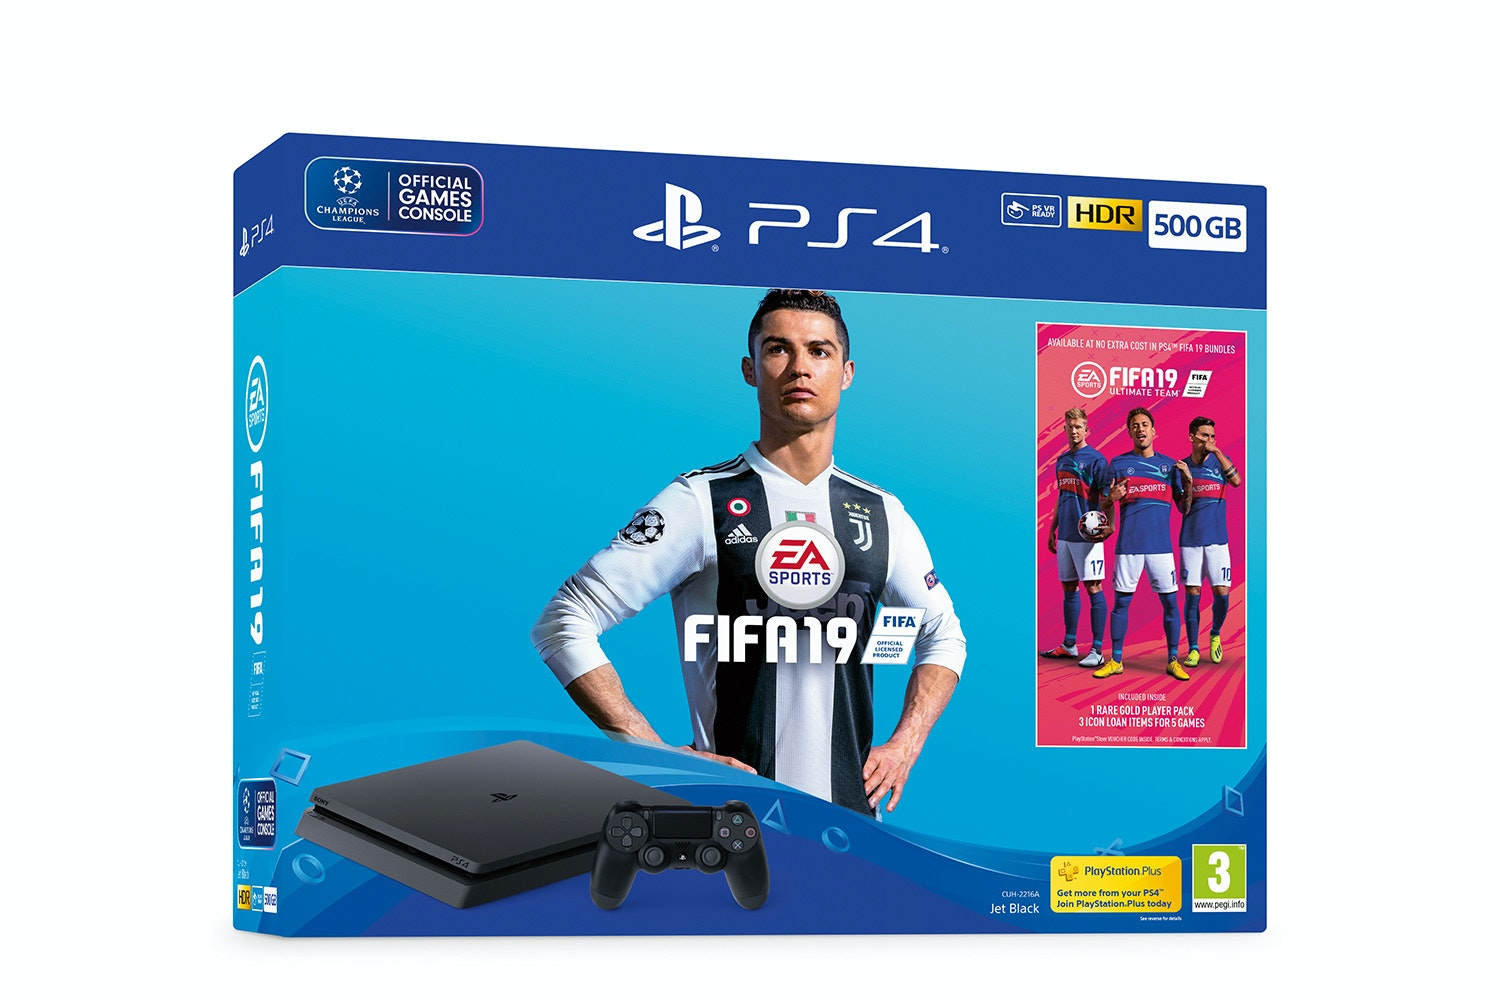 PS4 500GB & FIFA 19 Bundle